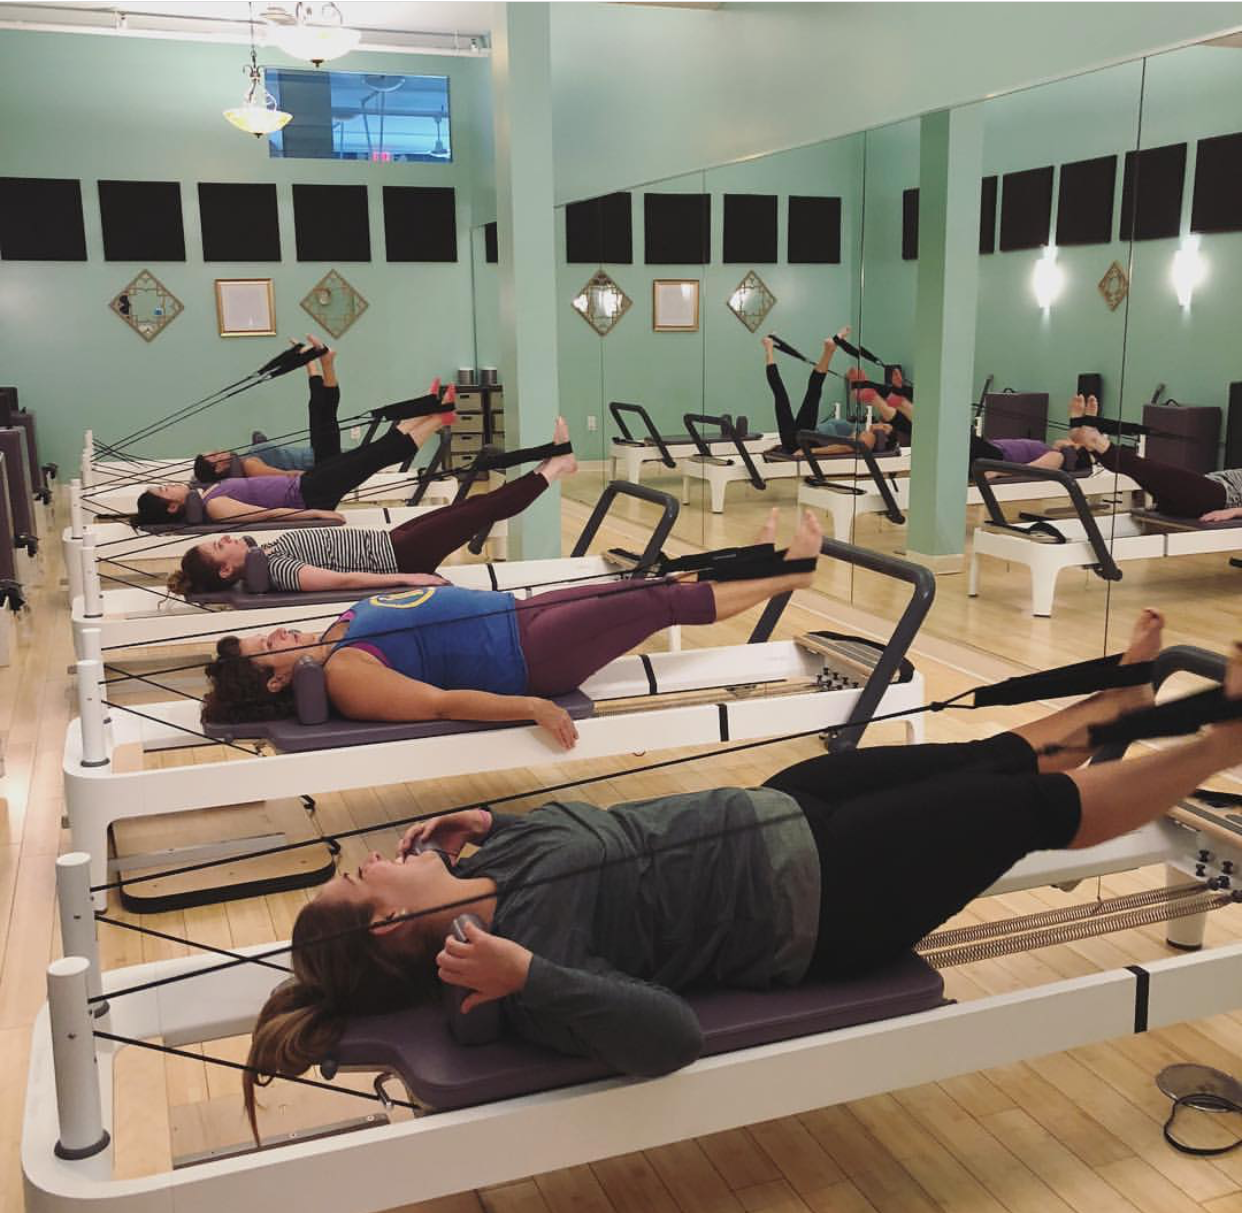 The Class: Reformer Instructor:  Joy Nicht  | Location:  Reforming Indy